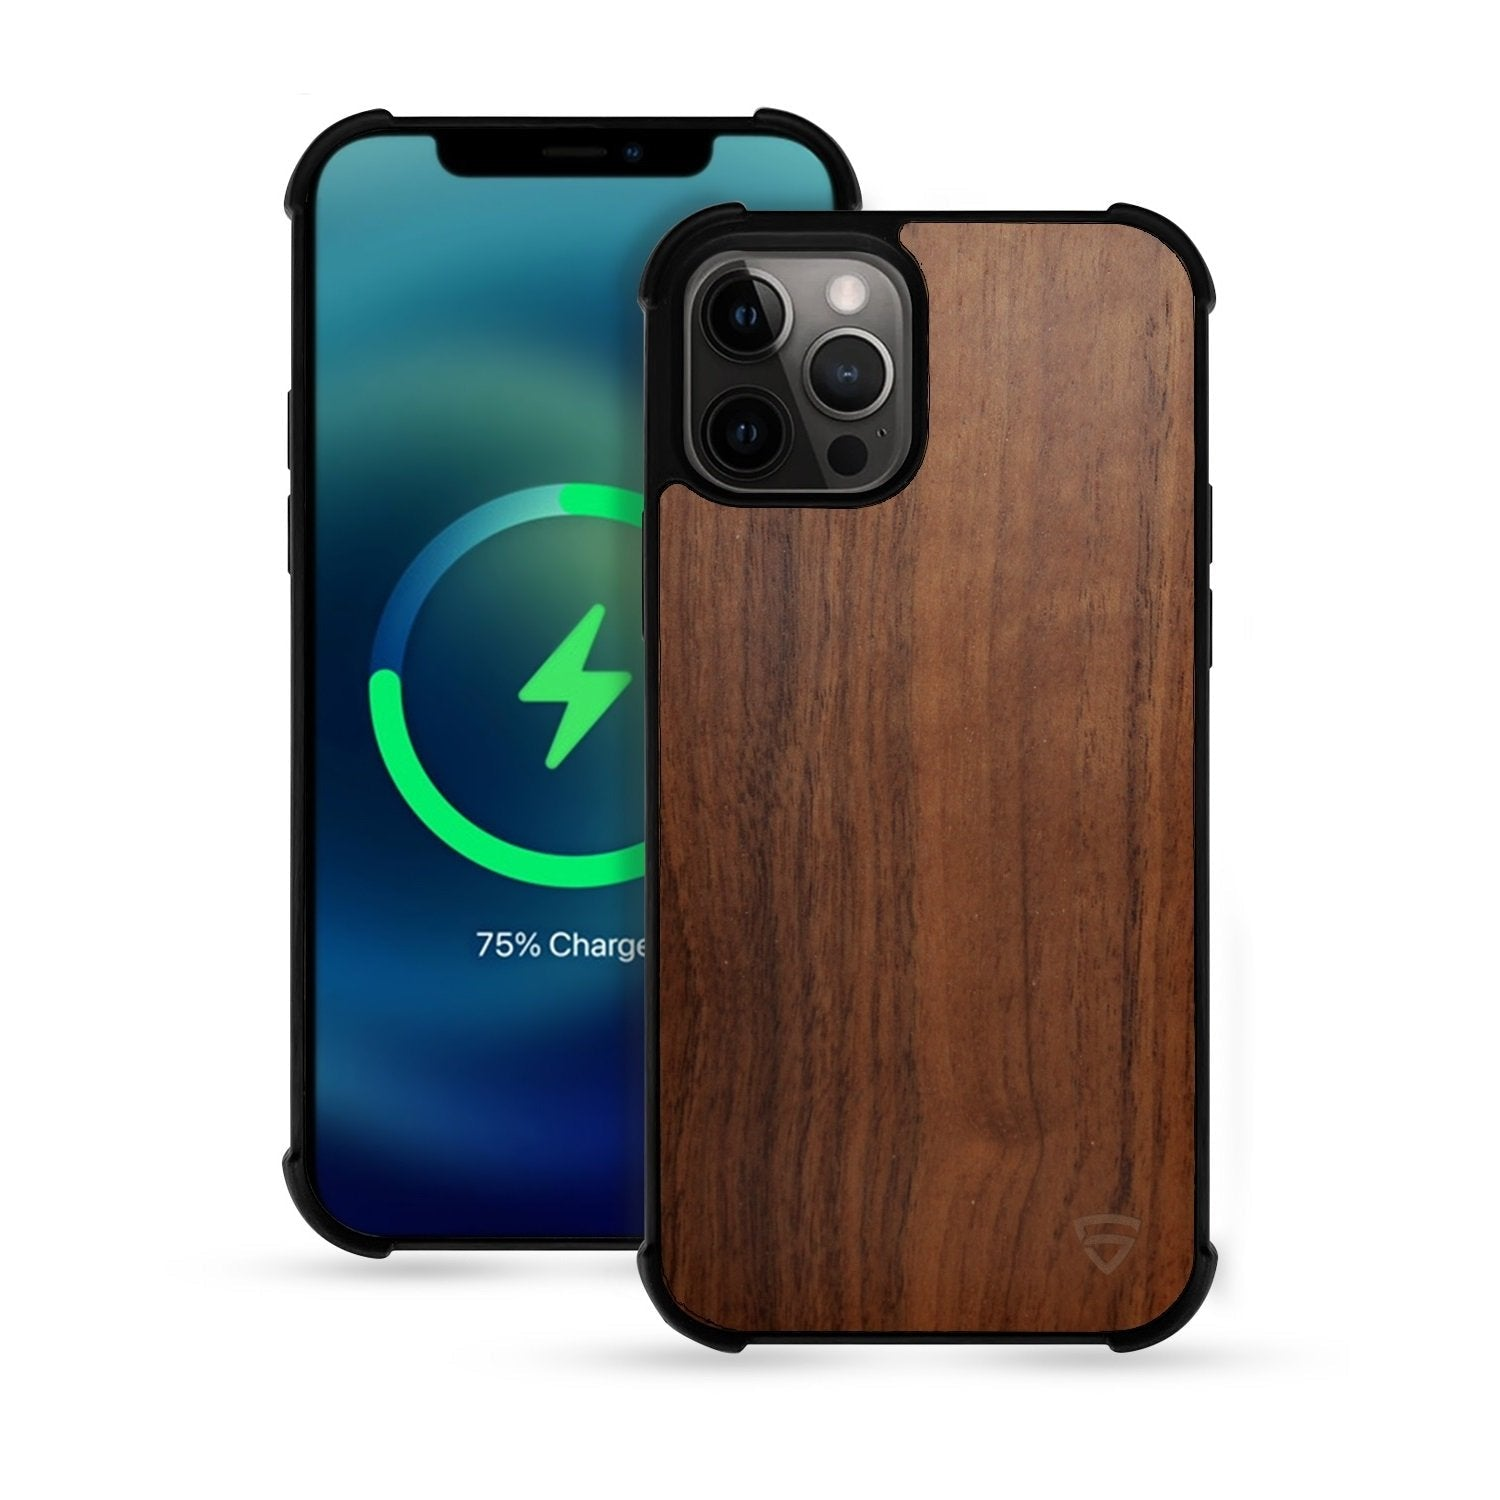 "RAEGR iPhone 12 Pro Max 5G MagFix Magnetic Case, Supports Mag-Safe Wireless Charging 6.7""- Elements Armor Case with Real Wood"